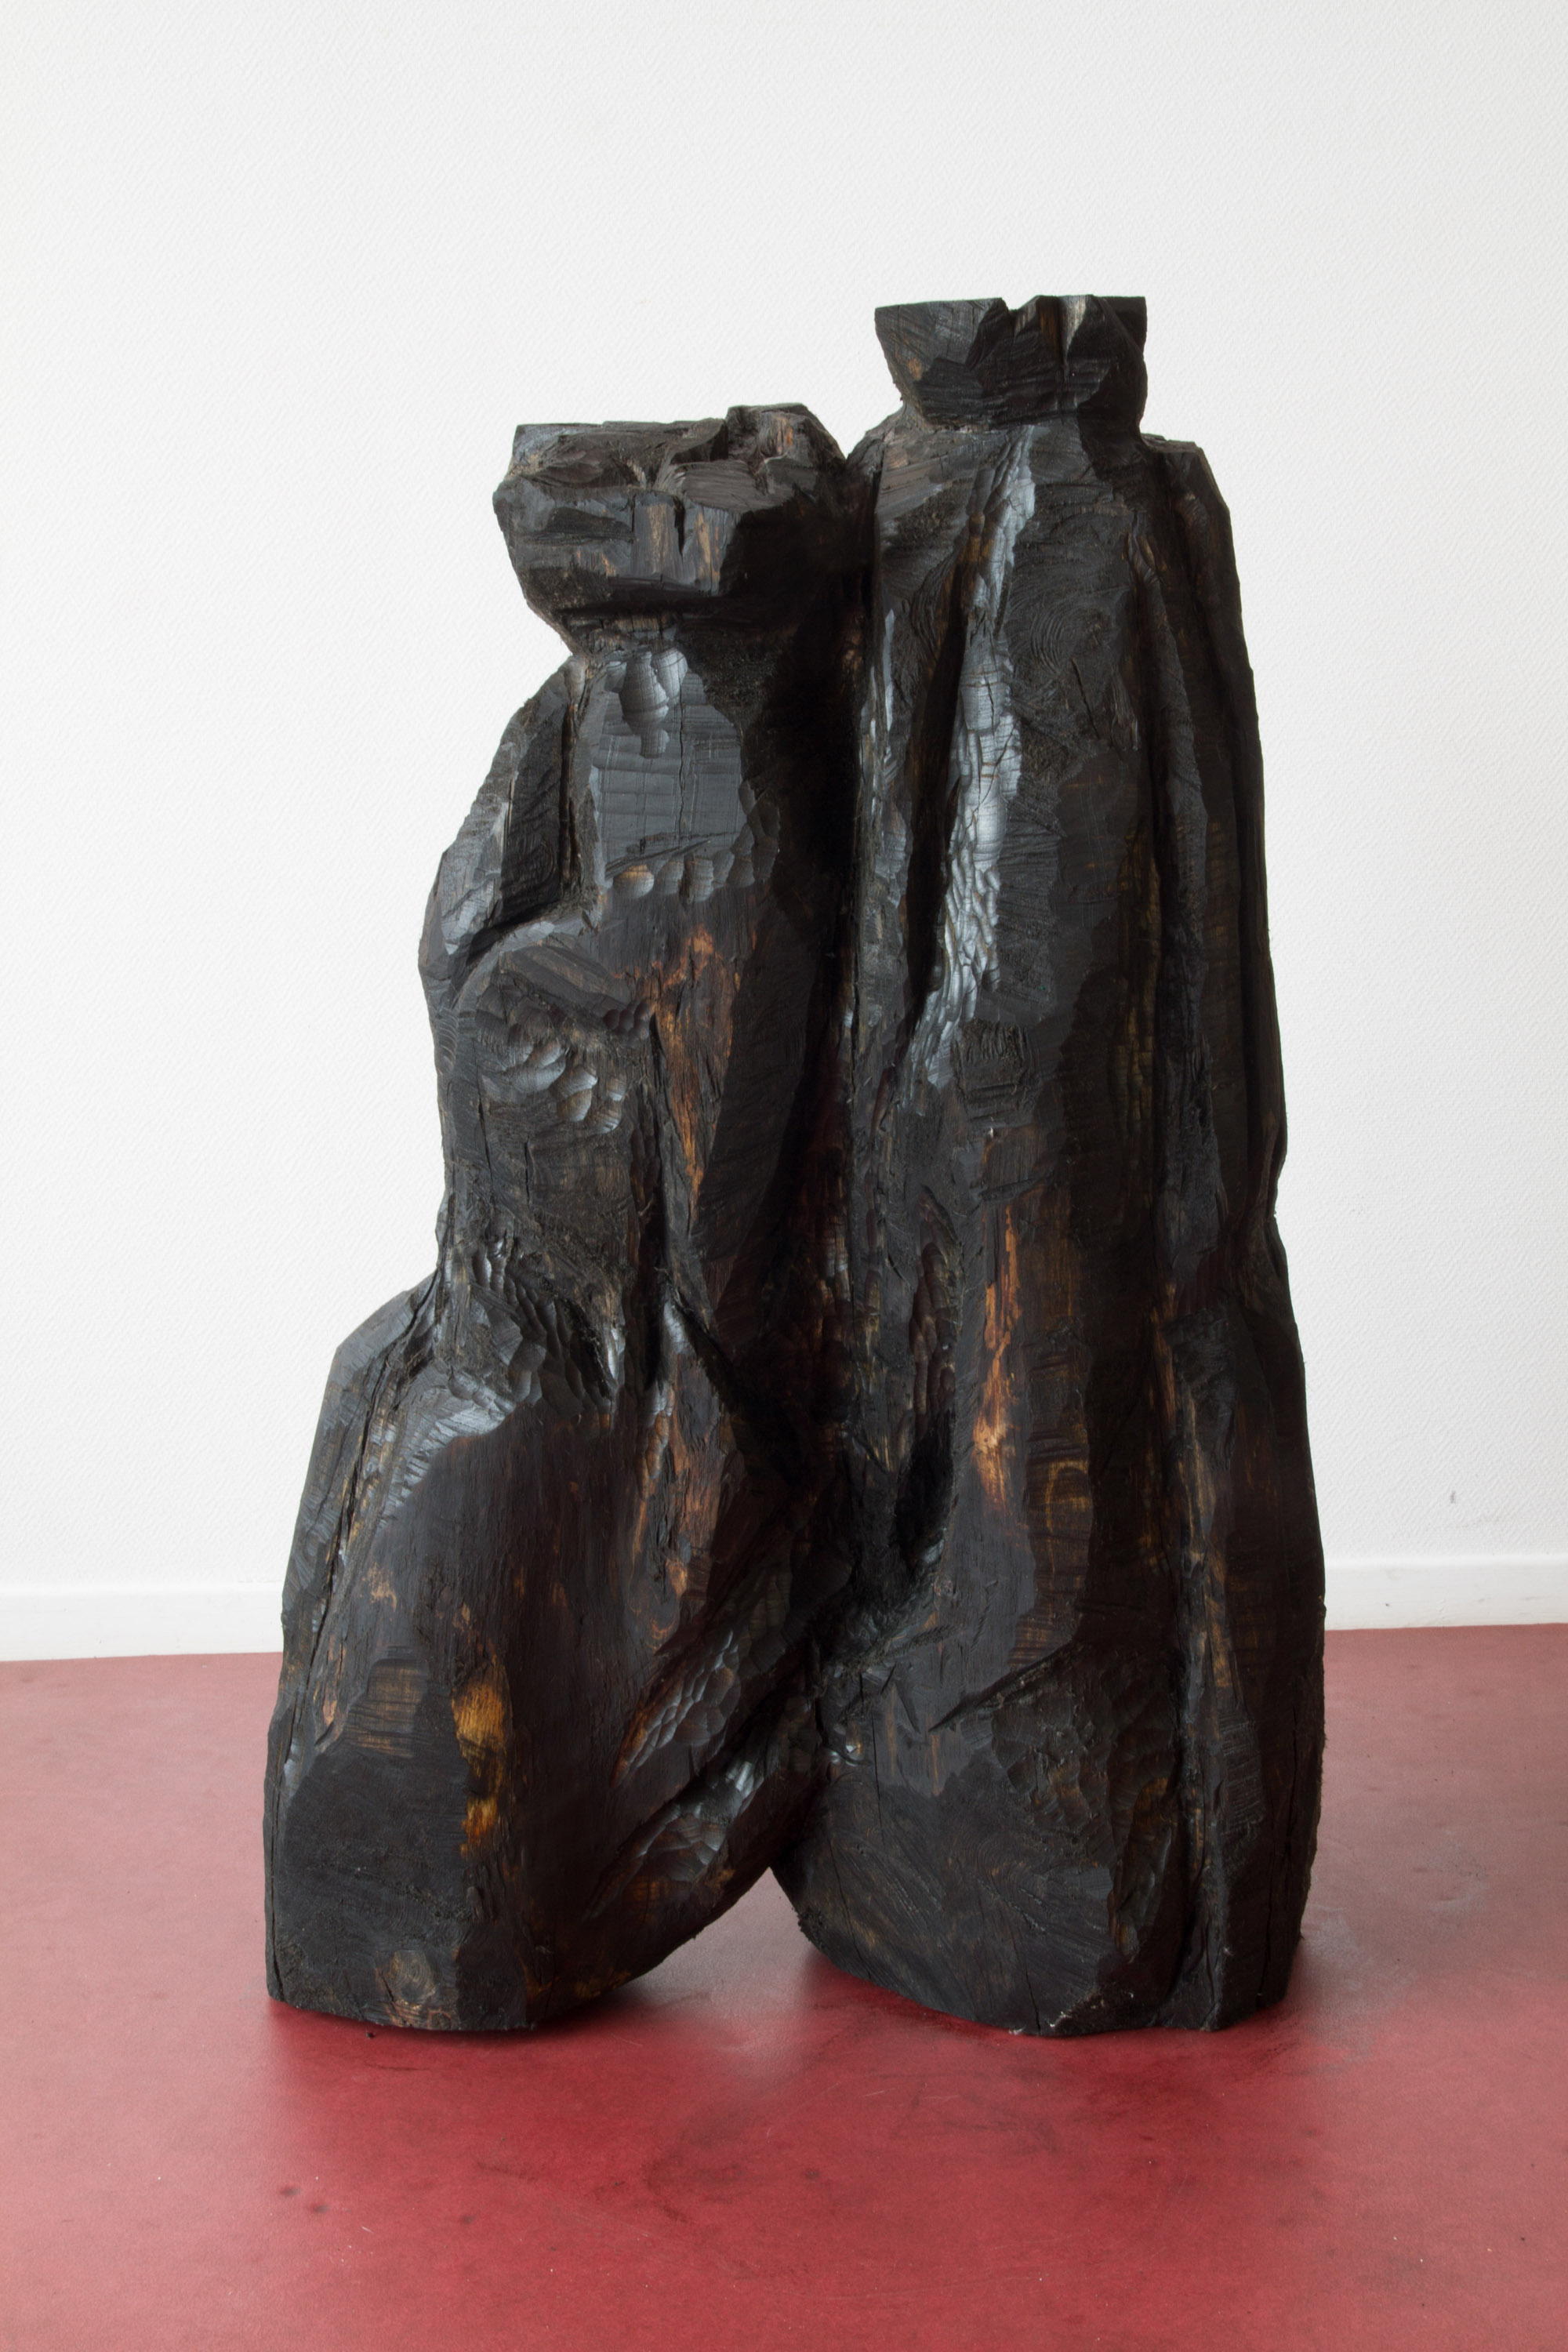 Refuse II (Ordures II), 2016, hand-carved sculpture, found Linden wood and used motor oil patina, 40 cm x 1m 20 x 1m. $5000